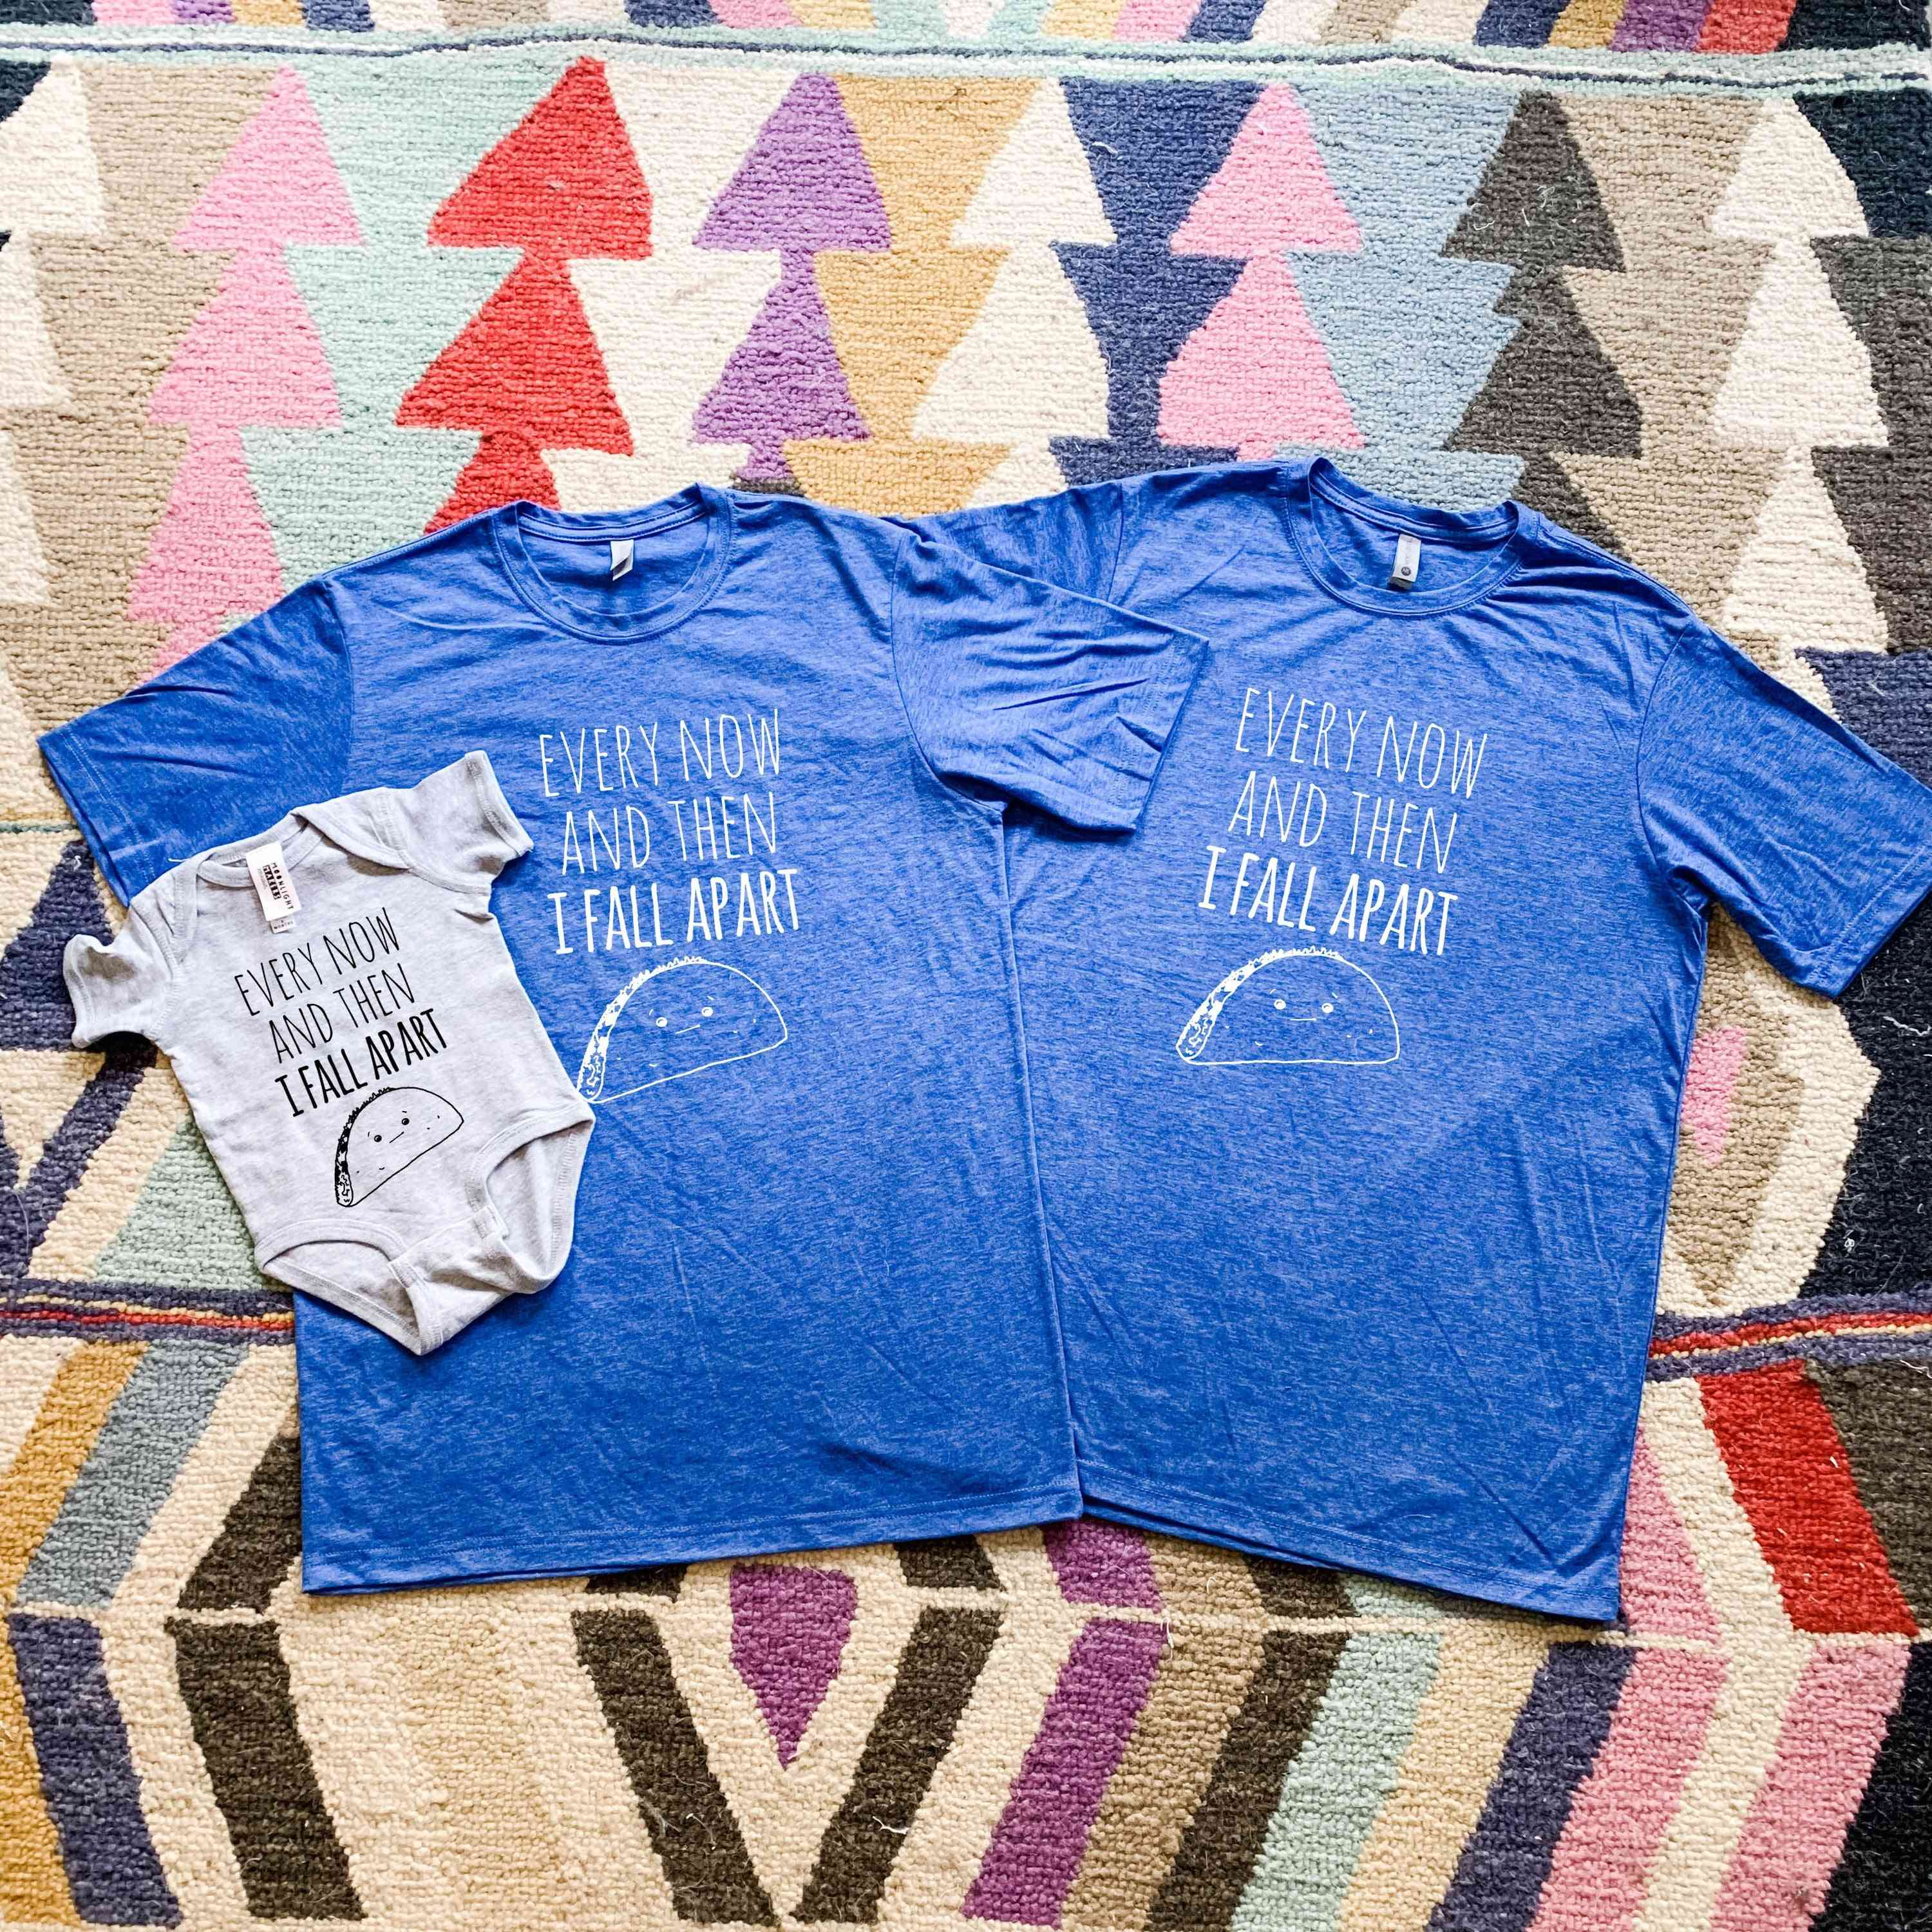 Every Now And Then I Fall Apart Family T-shirt Set